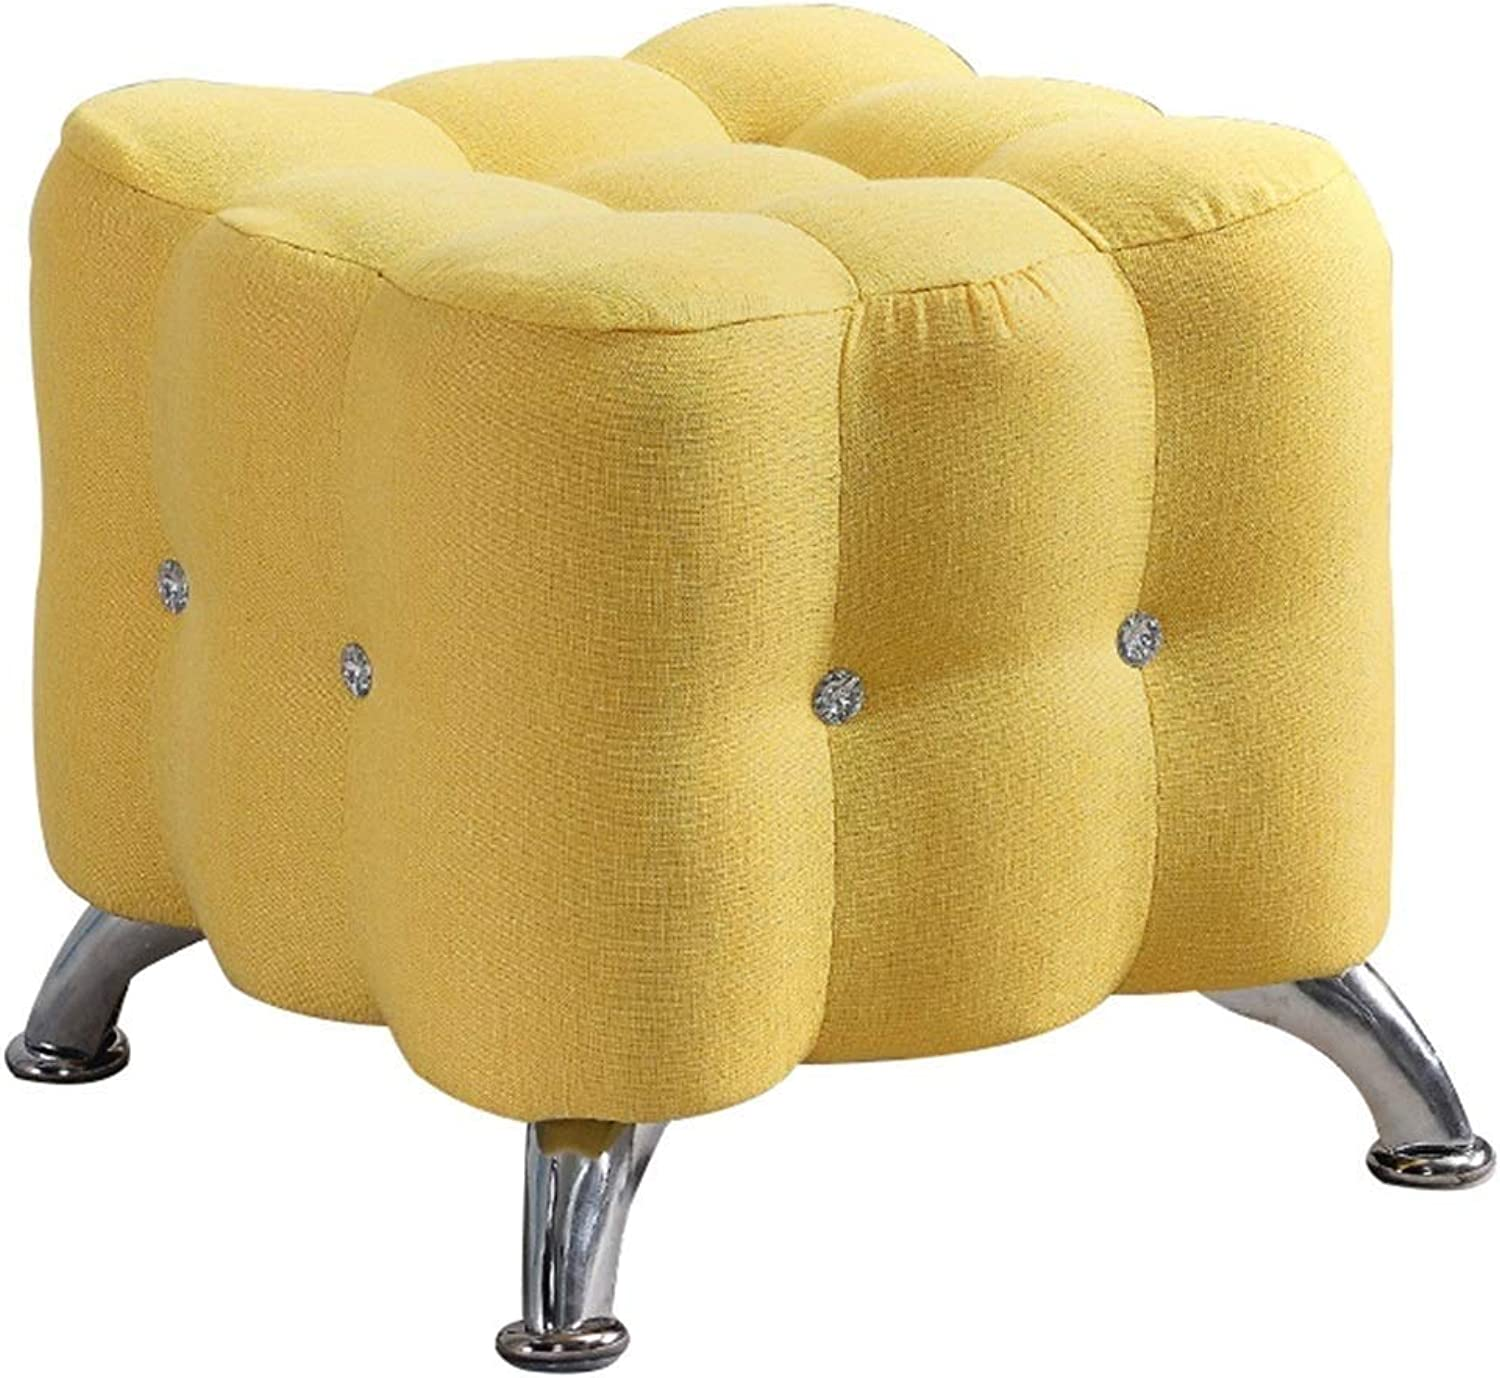 Footstool Solid Wood Frame Metal Storage Change shoes Bench Living Room Simple, 9 colors GFMING (color   Yellow, Size   40x40x40cm)